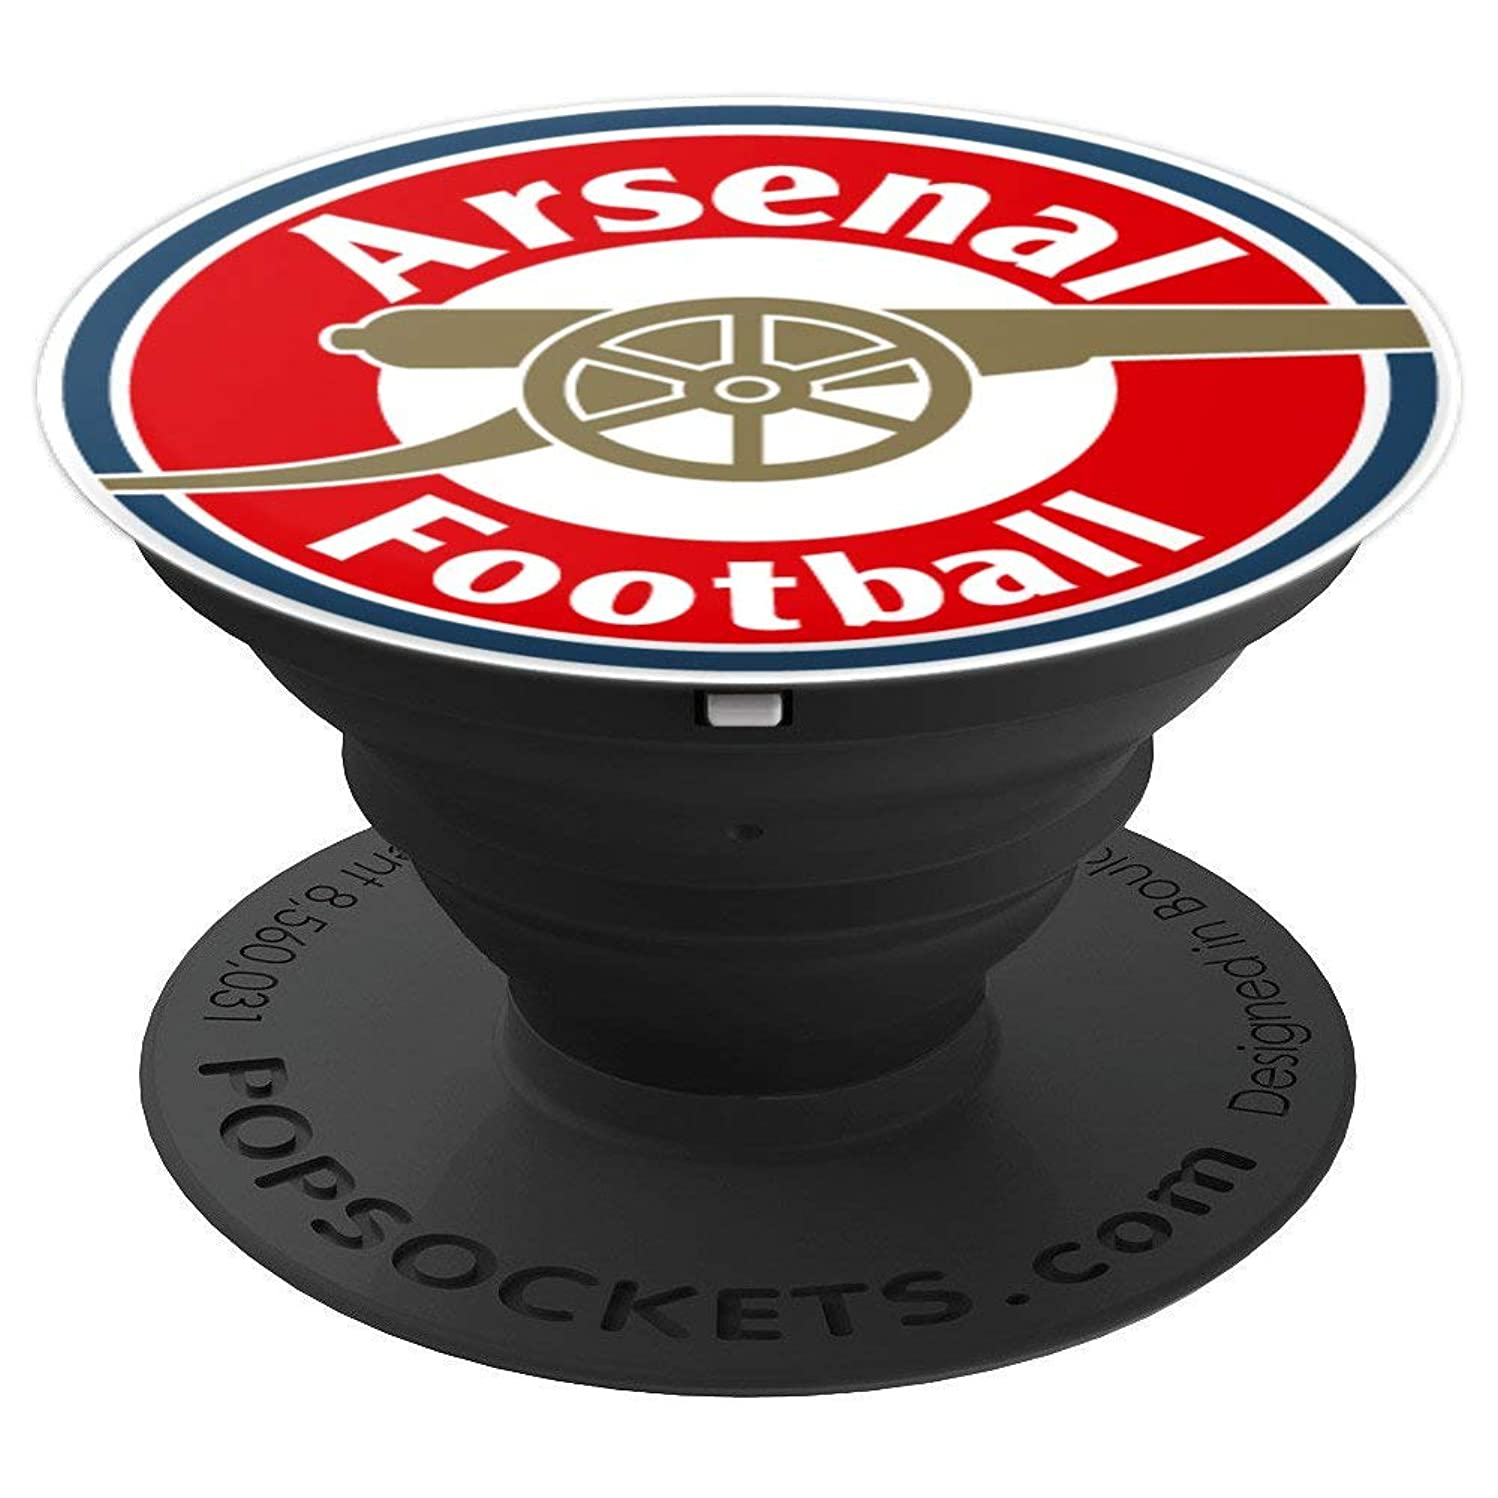 Arsenal Soccer London UK Travel Gift - PopSockets Grip and Stand for Phones and Tablets